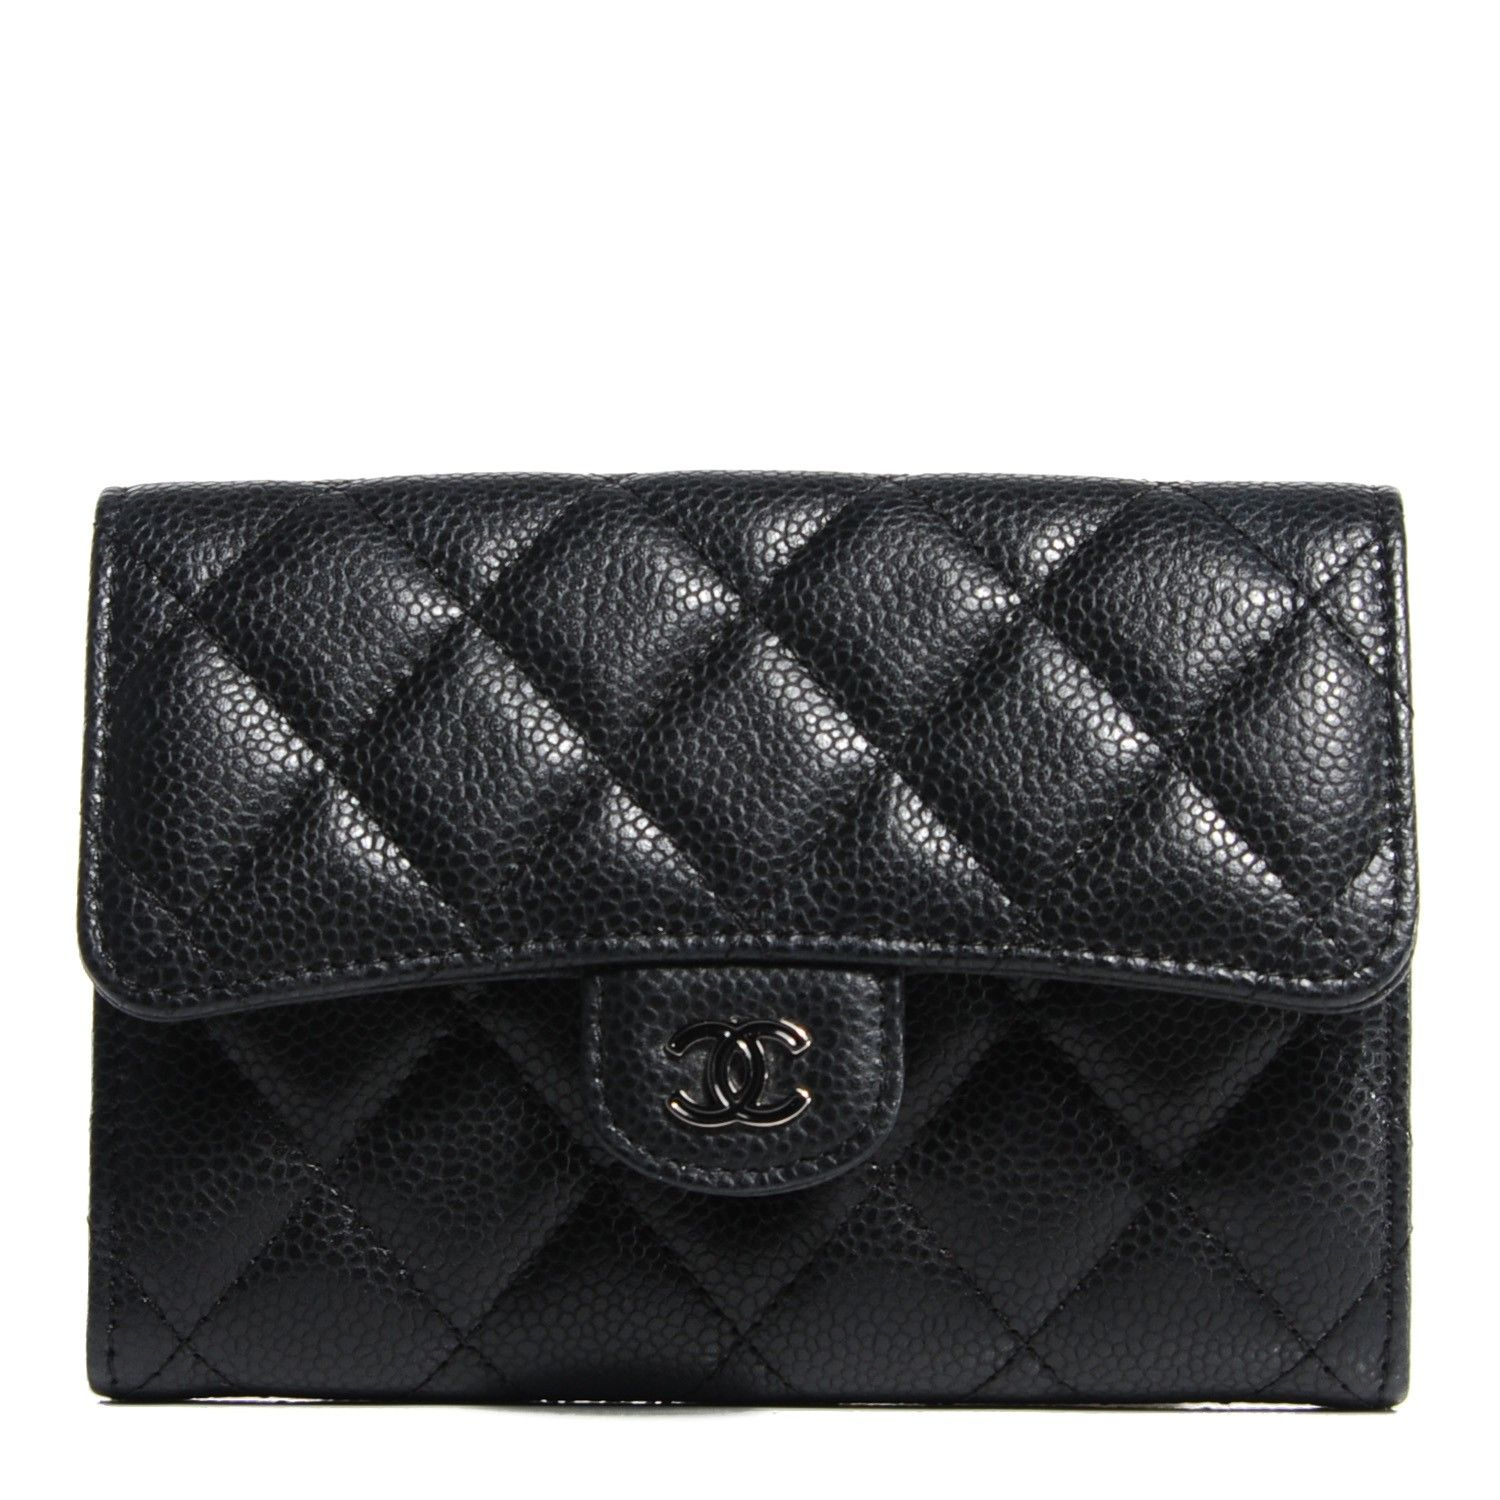 CHANEL Caviar Quilted Small Flap Wallet Black Chanel